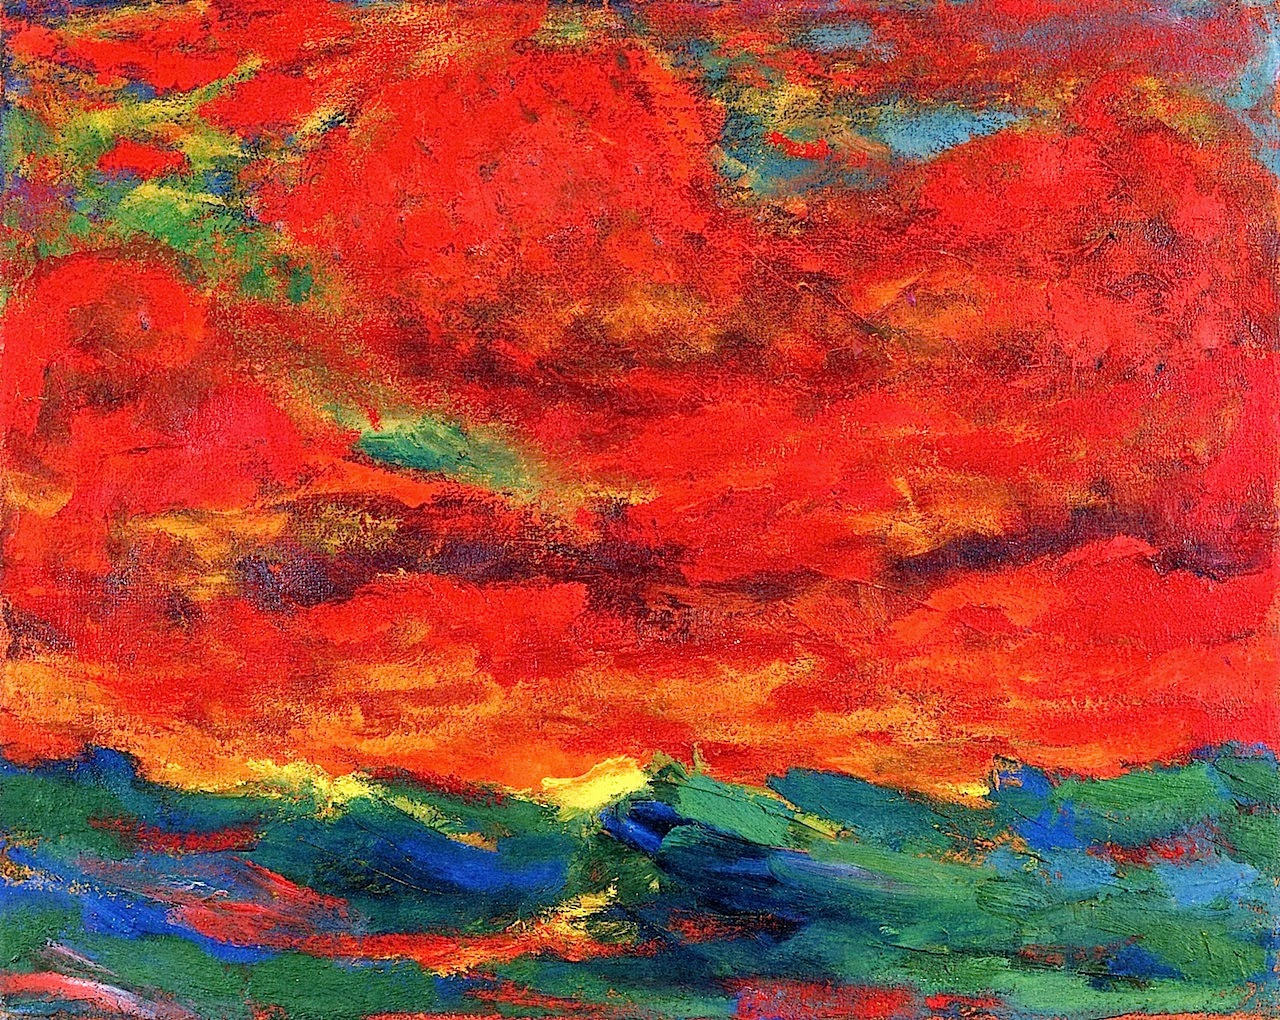 German Expressionist painting Emil Nolde, A Long Time